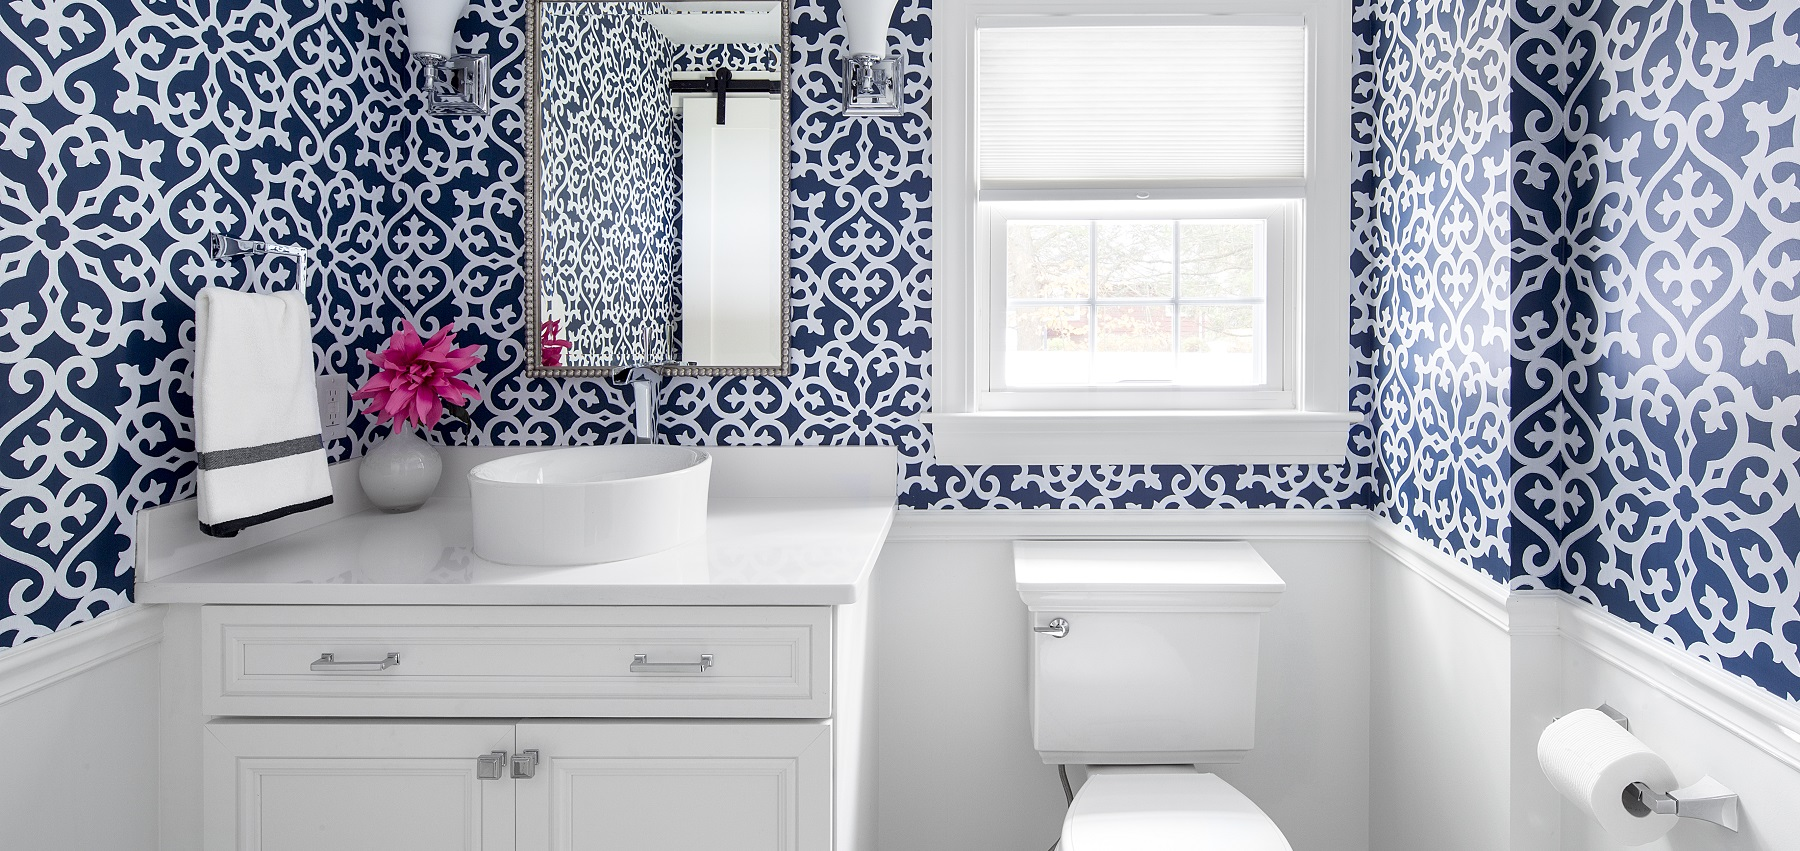 Masters Touch Design Build – Home Remodeling Specialist